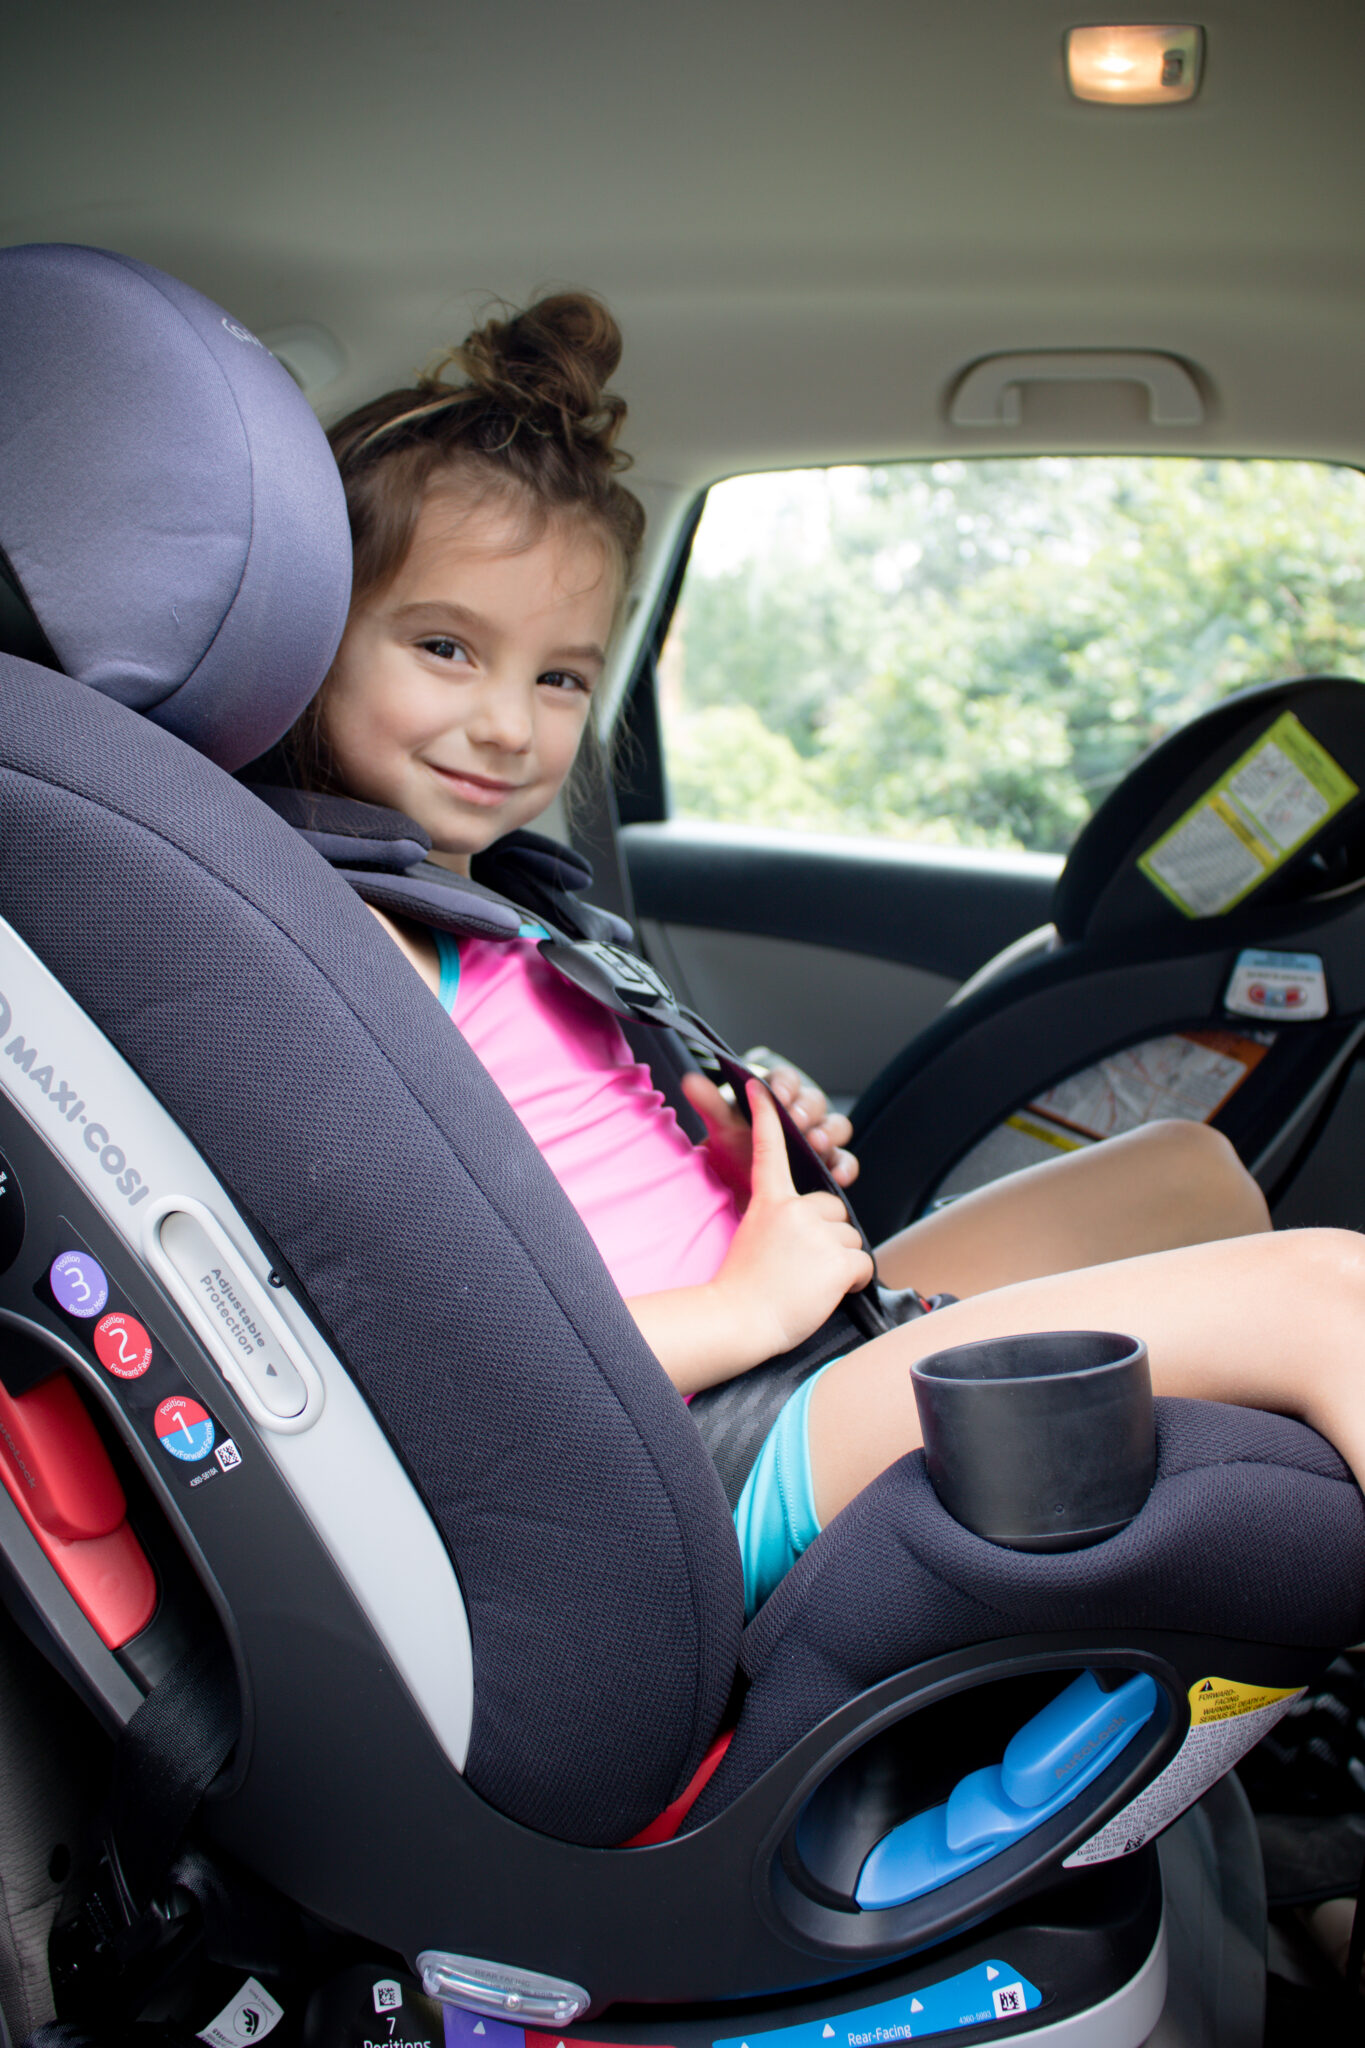 3 Tips for a Safe Car Ride with Kids